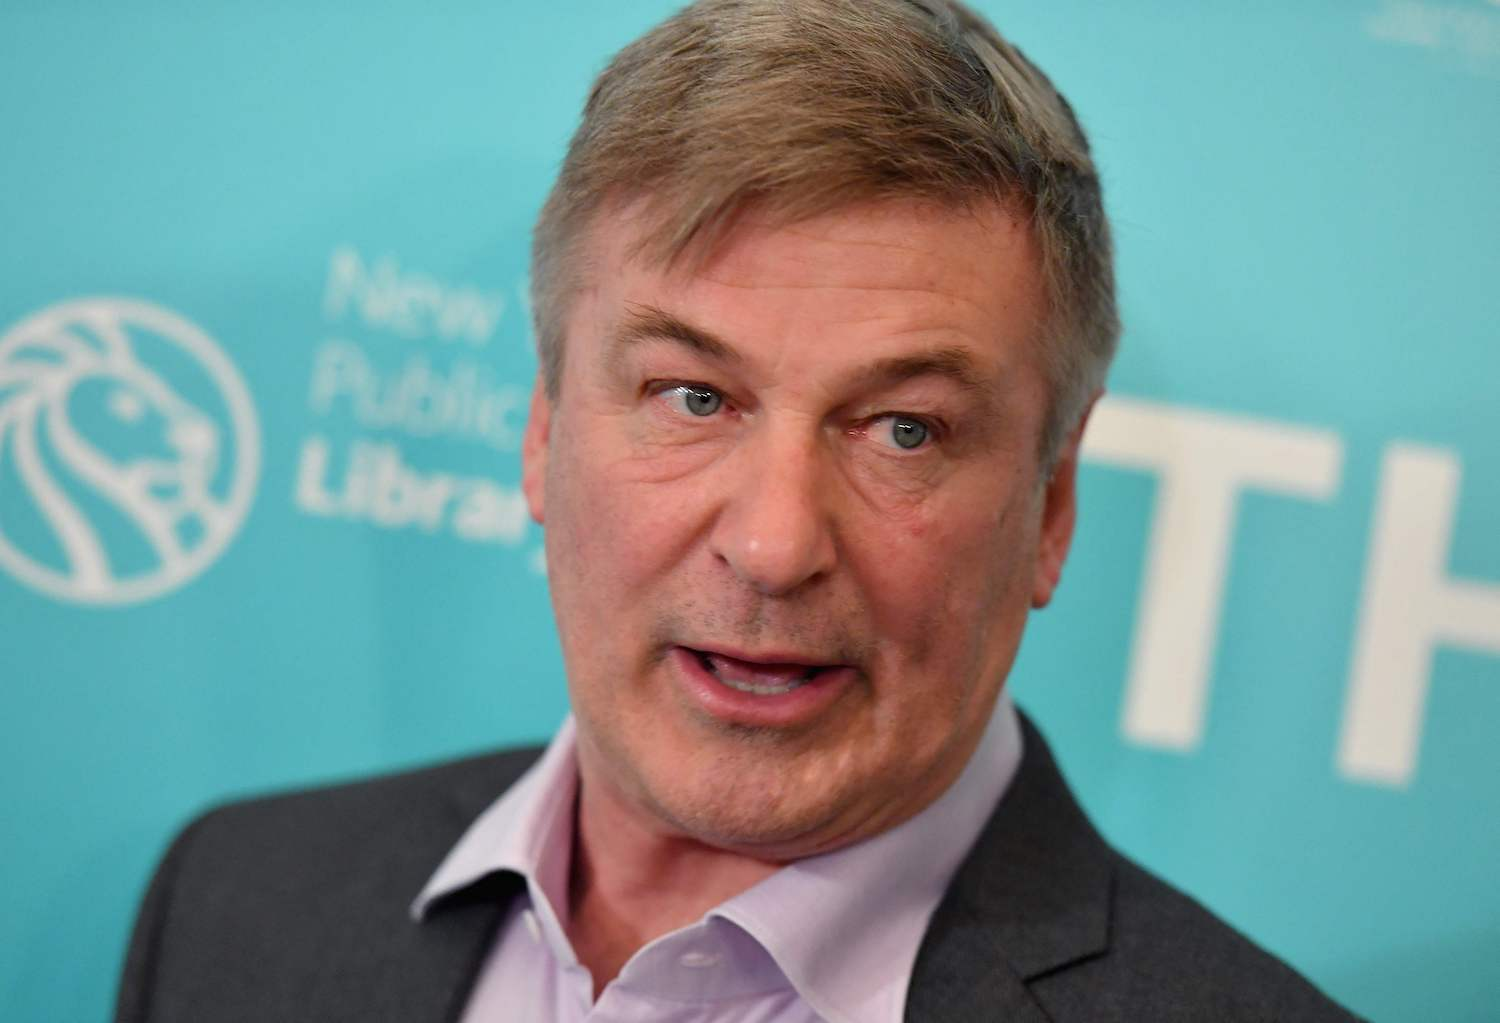 Alec Baldwin at centre of on-set shooting tragedy